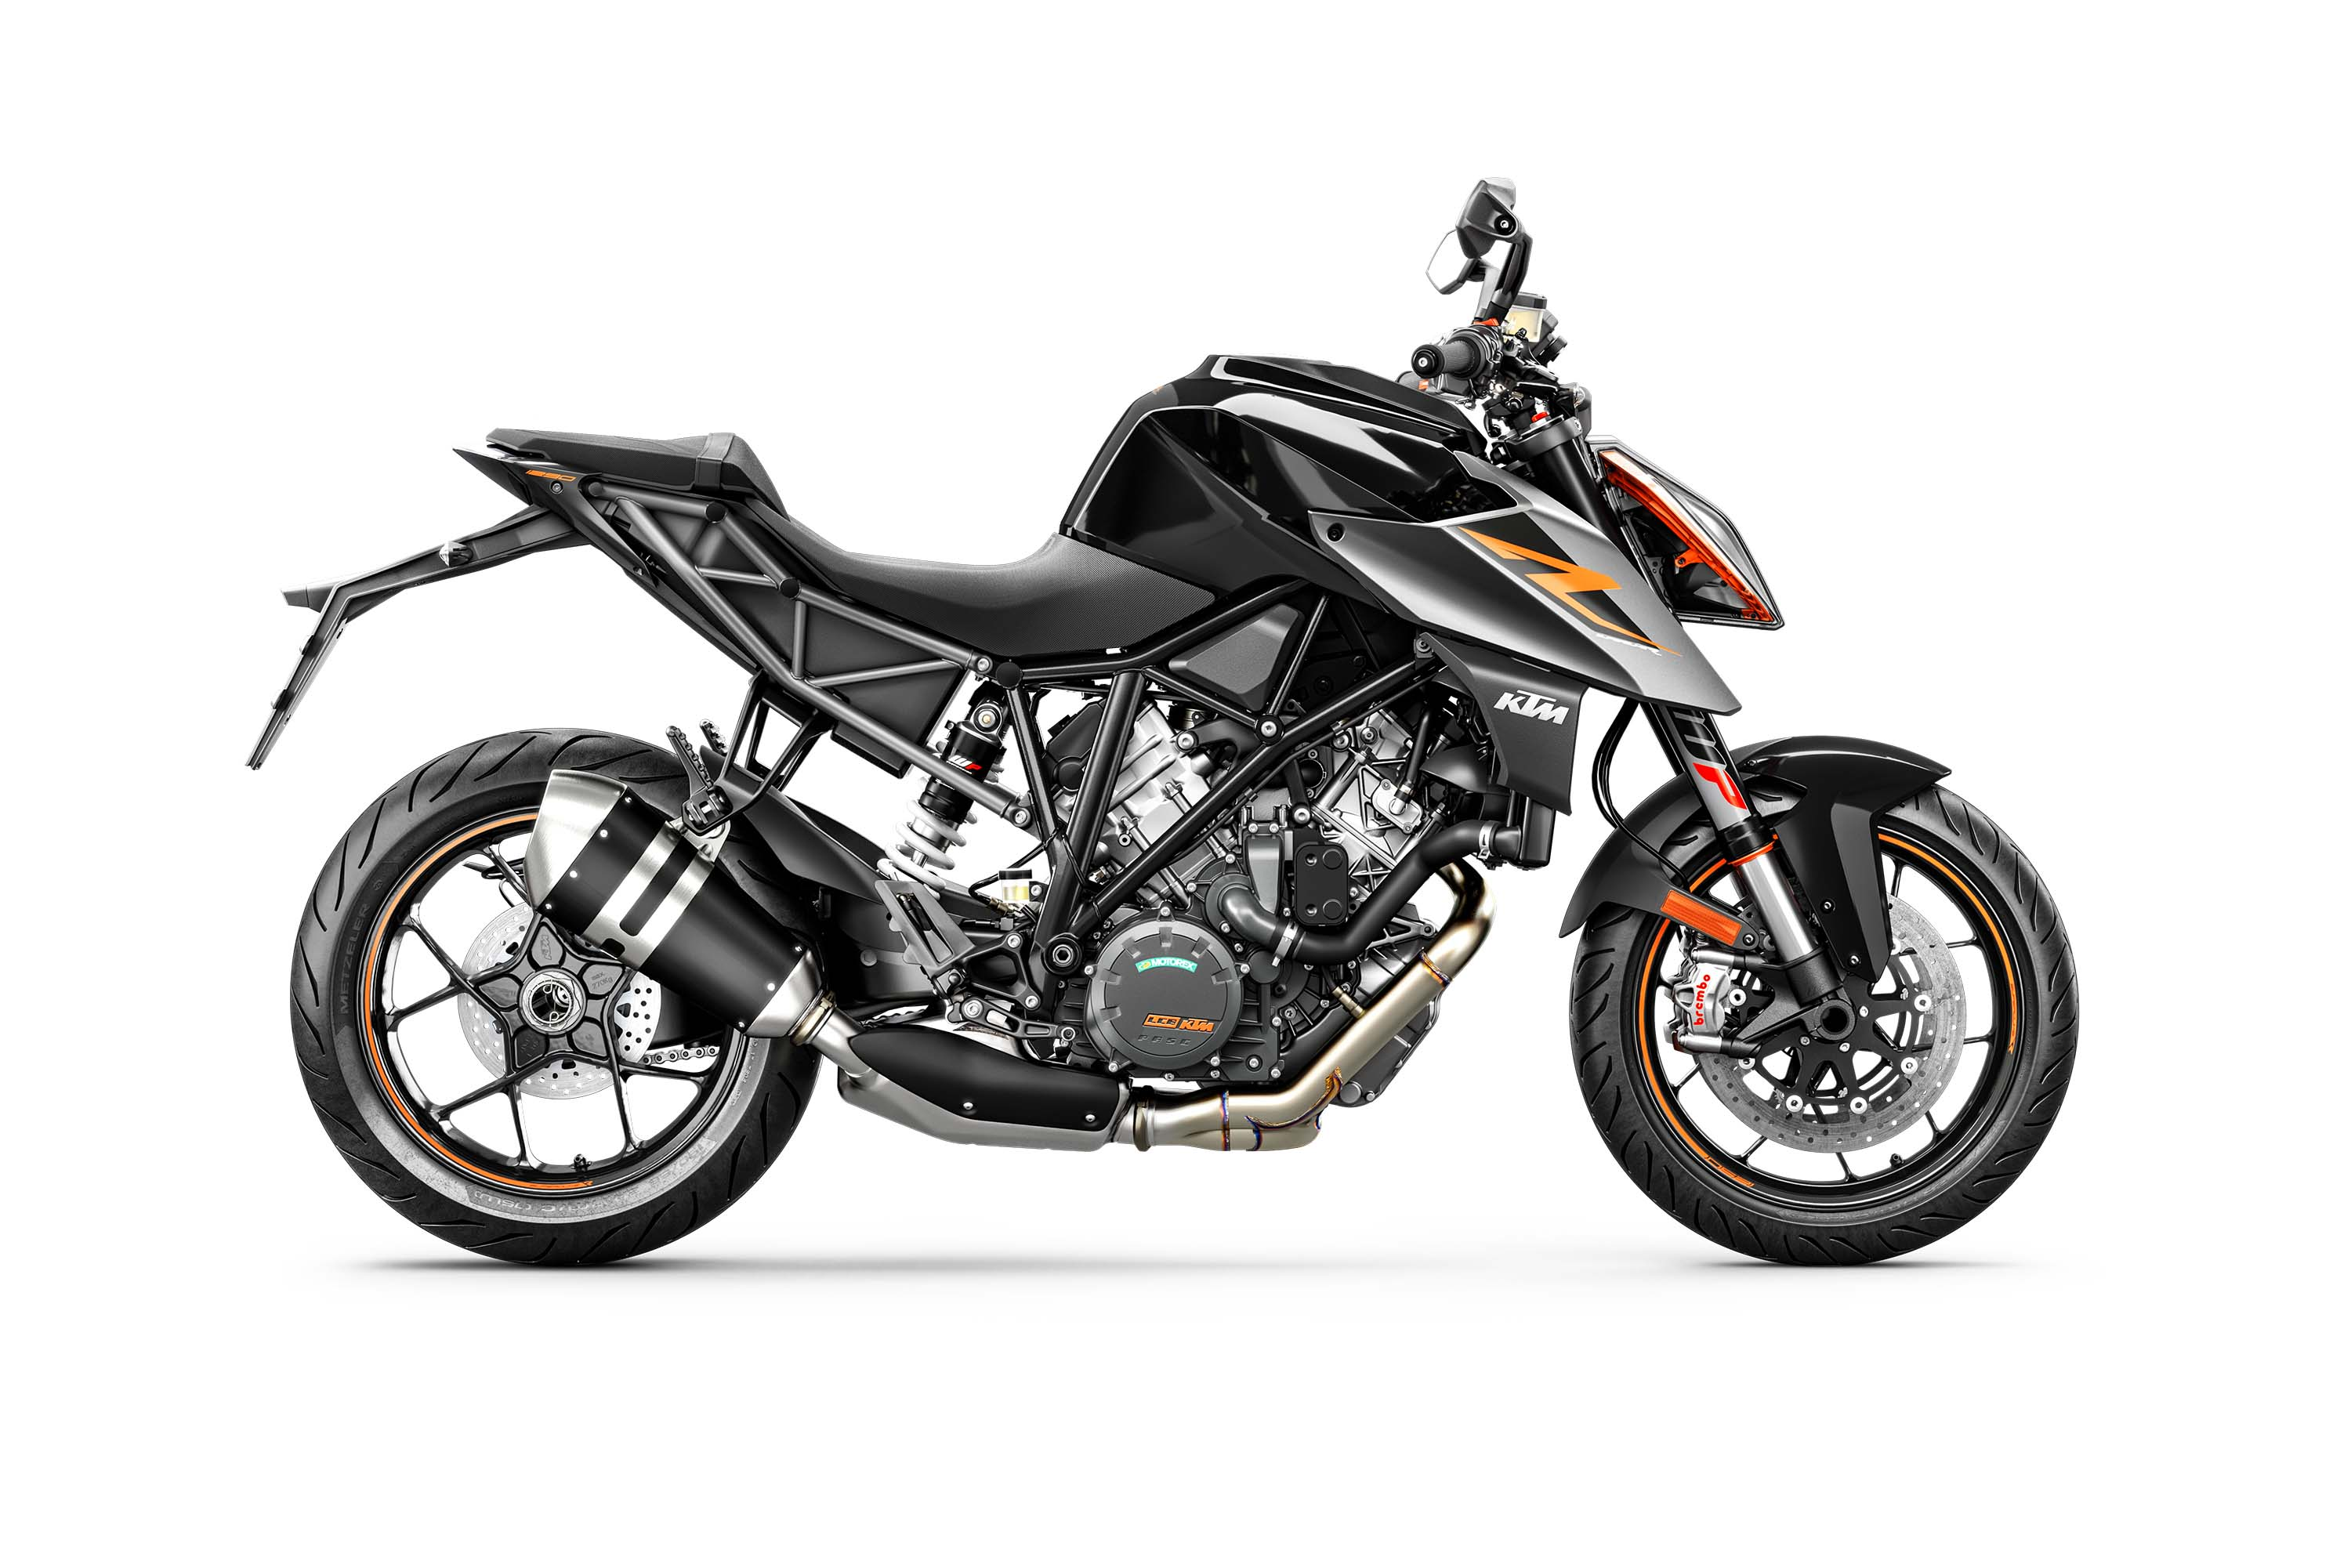 ktm 1290 super duke r gets an update for 2017. Black Bedroom Furniture Sets. Home Design Ideas